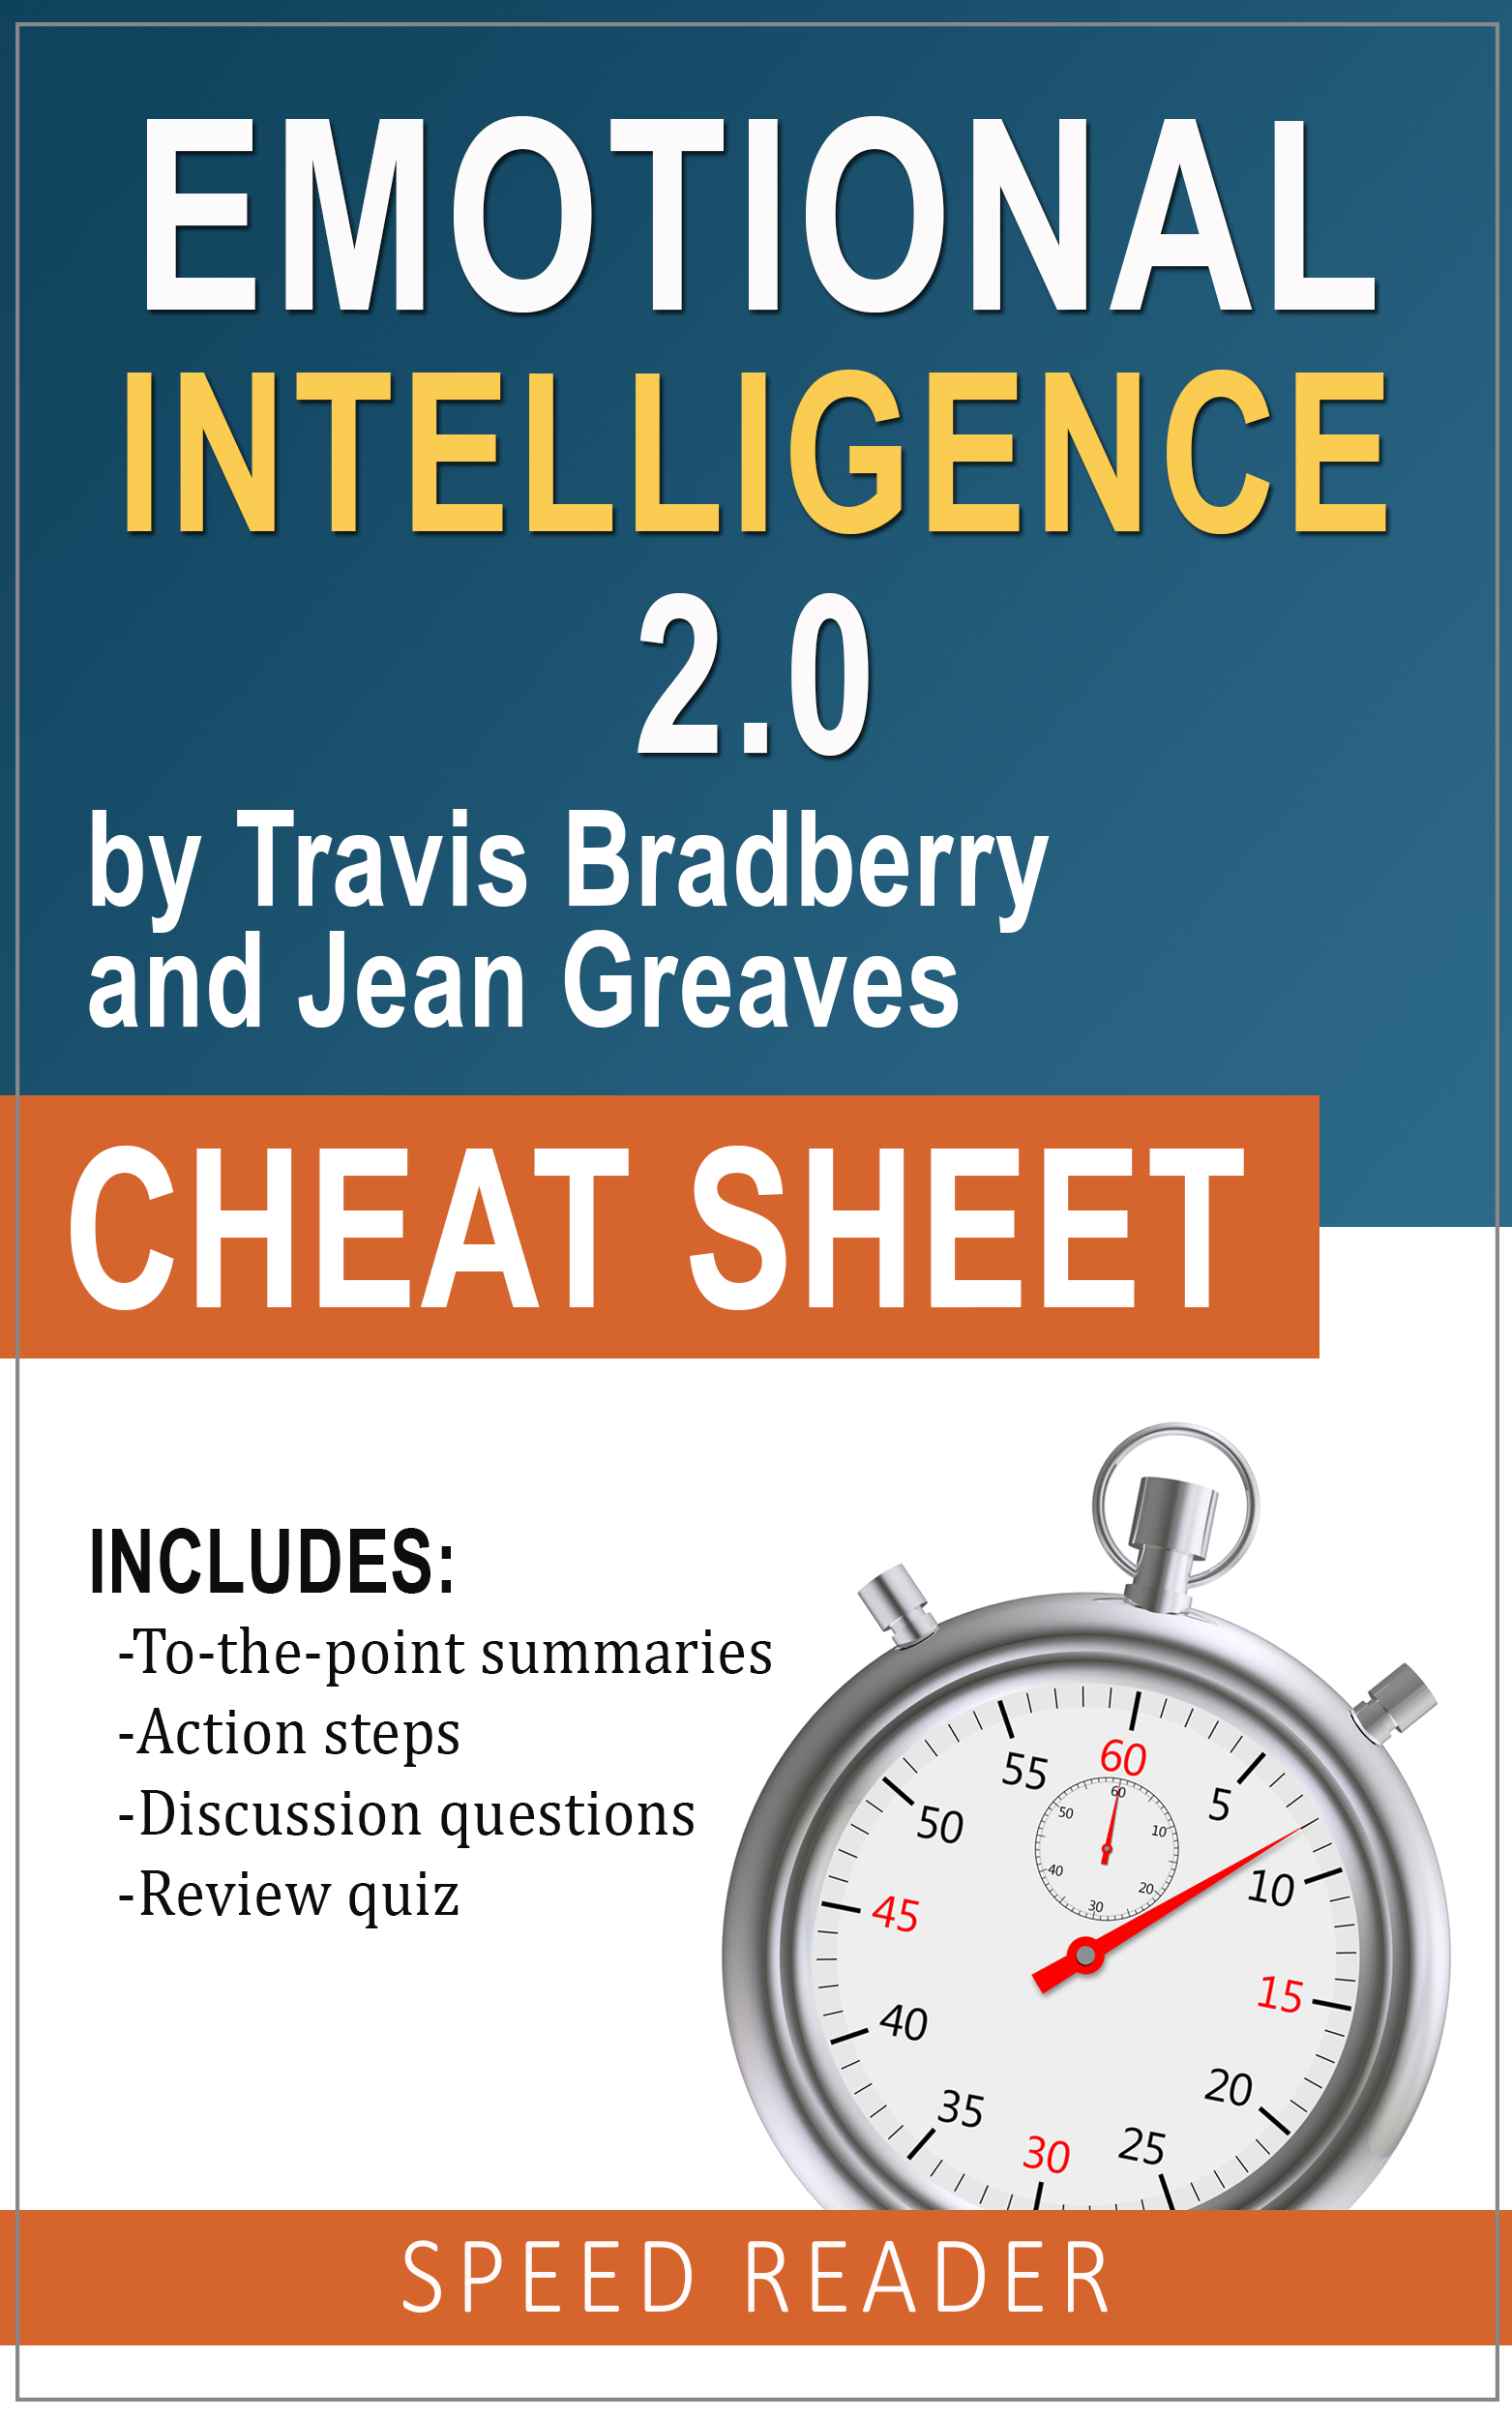 emotional intelligence 2.0 travis bradberry pdf free download